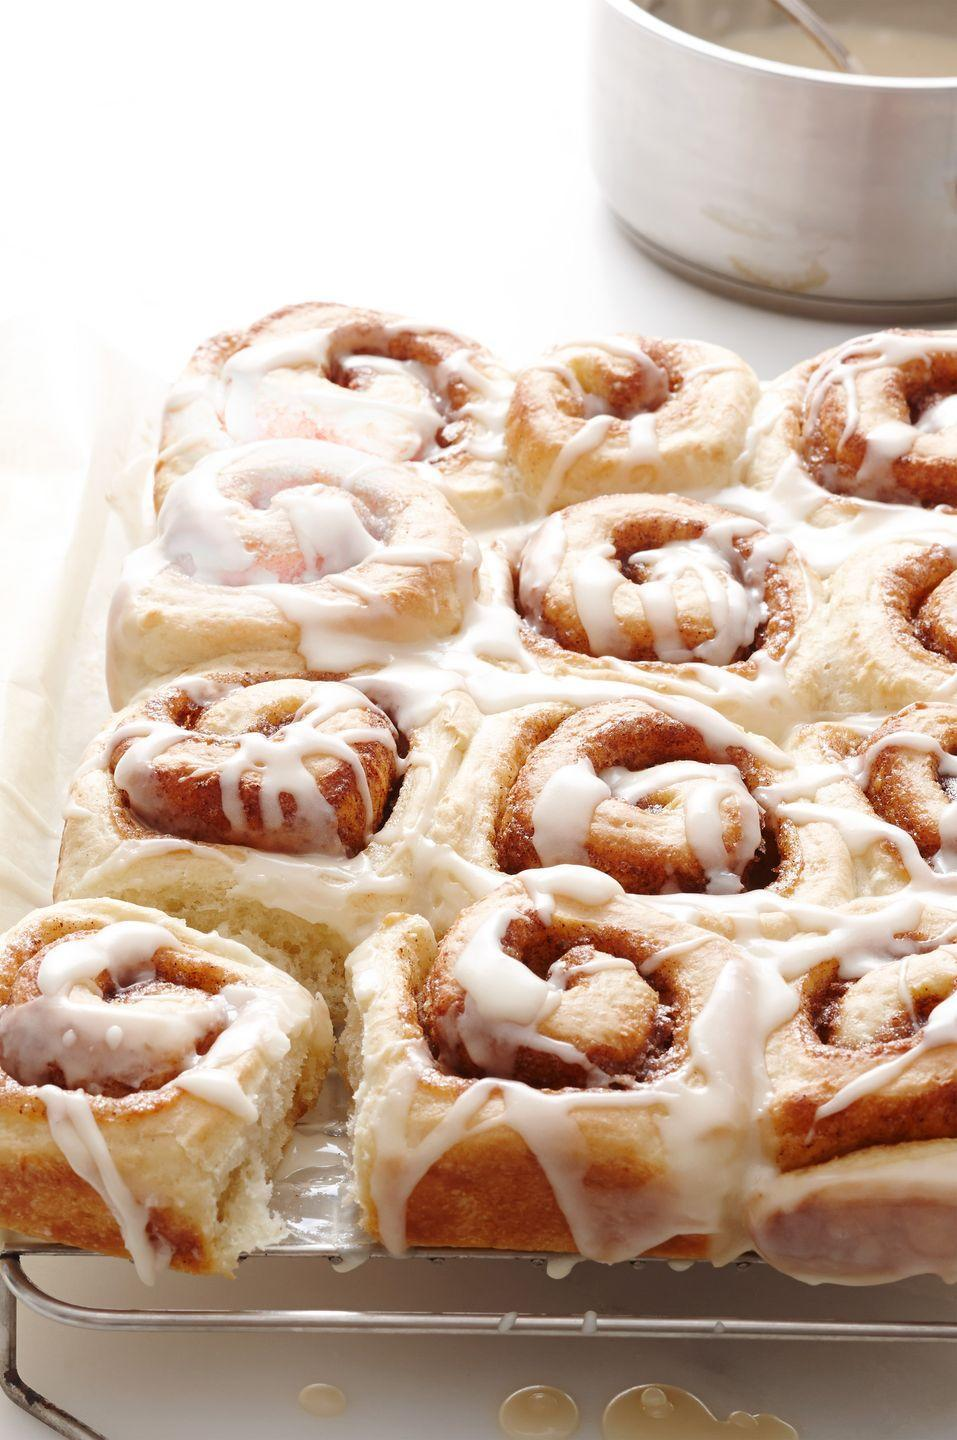 "<p>Cinnamon rolls are a non-negotiable brunch staple, and nothing beats the homemade kind. </p><p><em><em><a href=""https://www.goodhousekeeping.com/food-recipes/a15360/cinnamon-rolls-recipe-wdy0414/"" rel=""nofollow noopener"" target=""_blank"" data-ylk=""slk:Get the recipe for Cinnamon Rolls »"" class=""link rapid-noclick-resp"">Get the recipe for Cinnamon Rolls »</a></em> </em><br></p>"